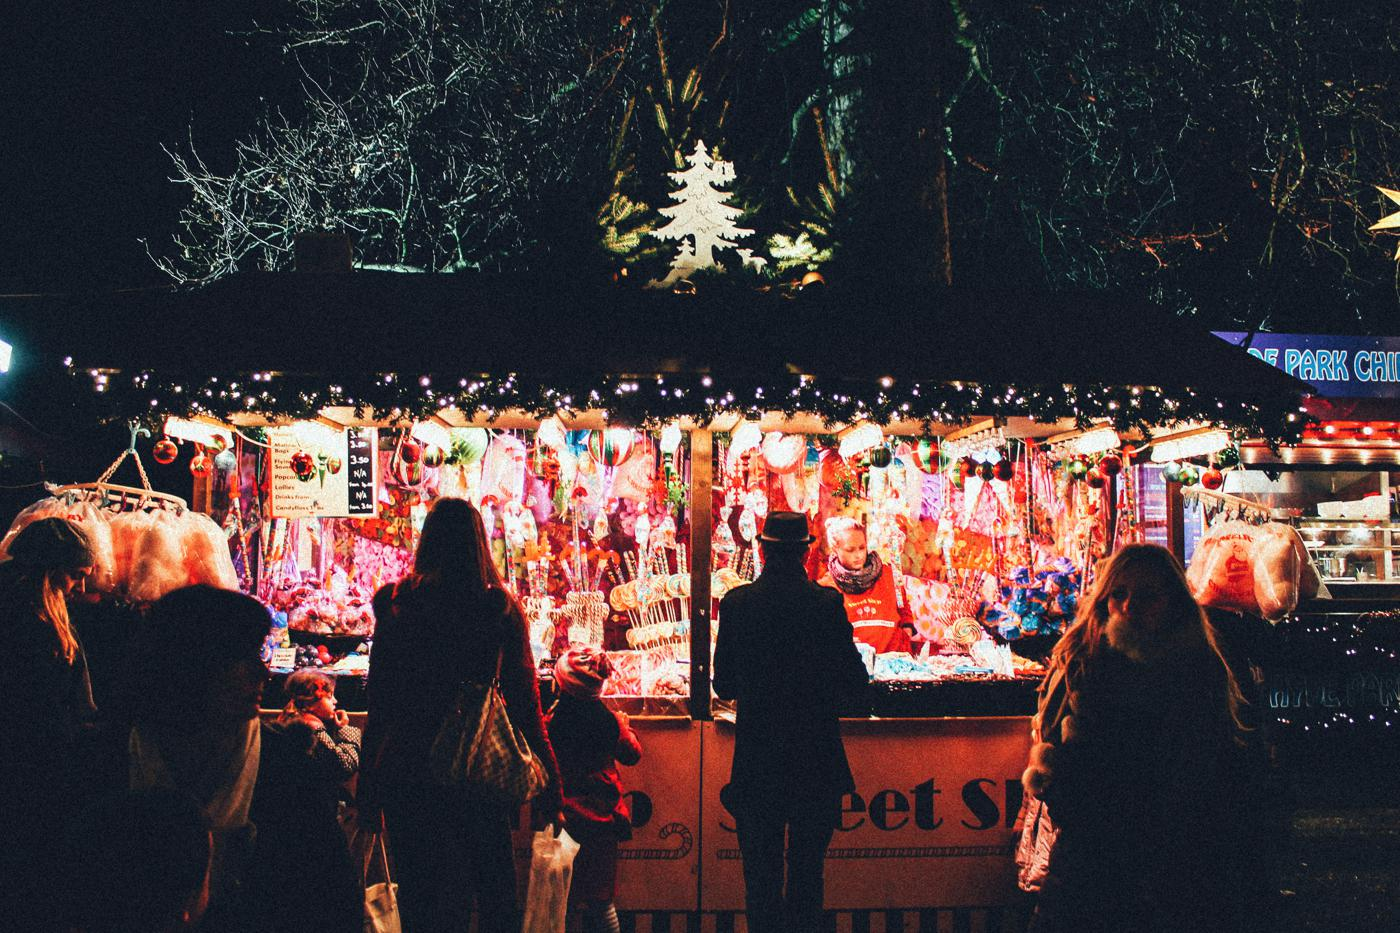 e2902c896af 19 Things You MUST Do At Winter Wonderland In London! - Hand Luggage ...